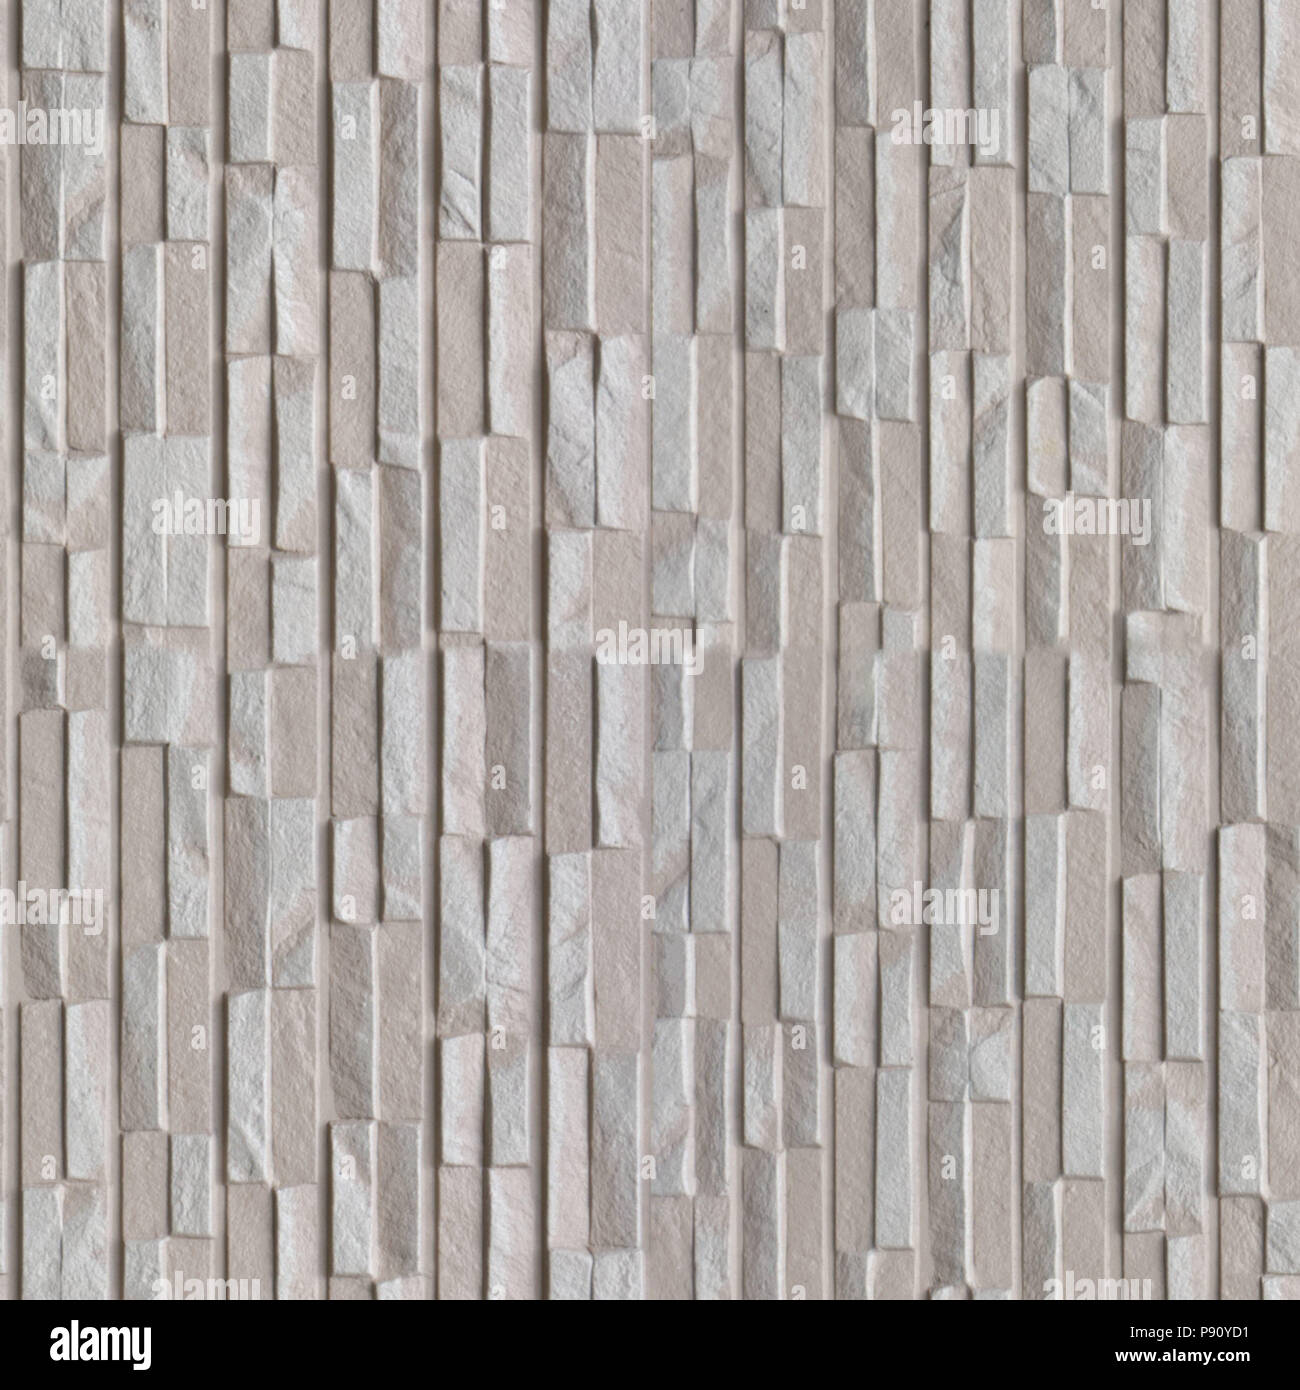 Seamless Pattern With Grey Stone Wall Panels Of The Original Squared Form Stock Photo Alamy